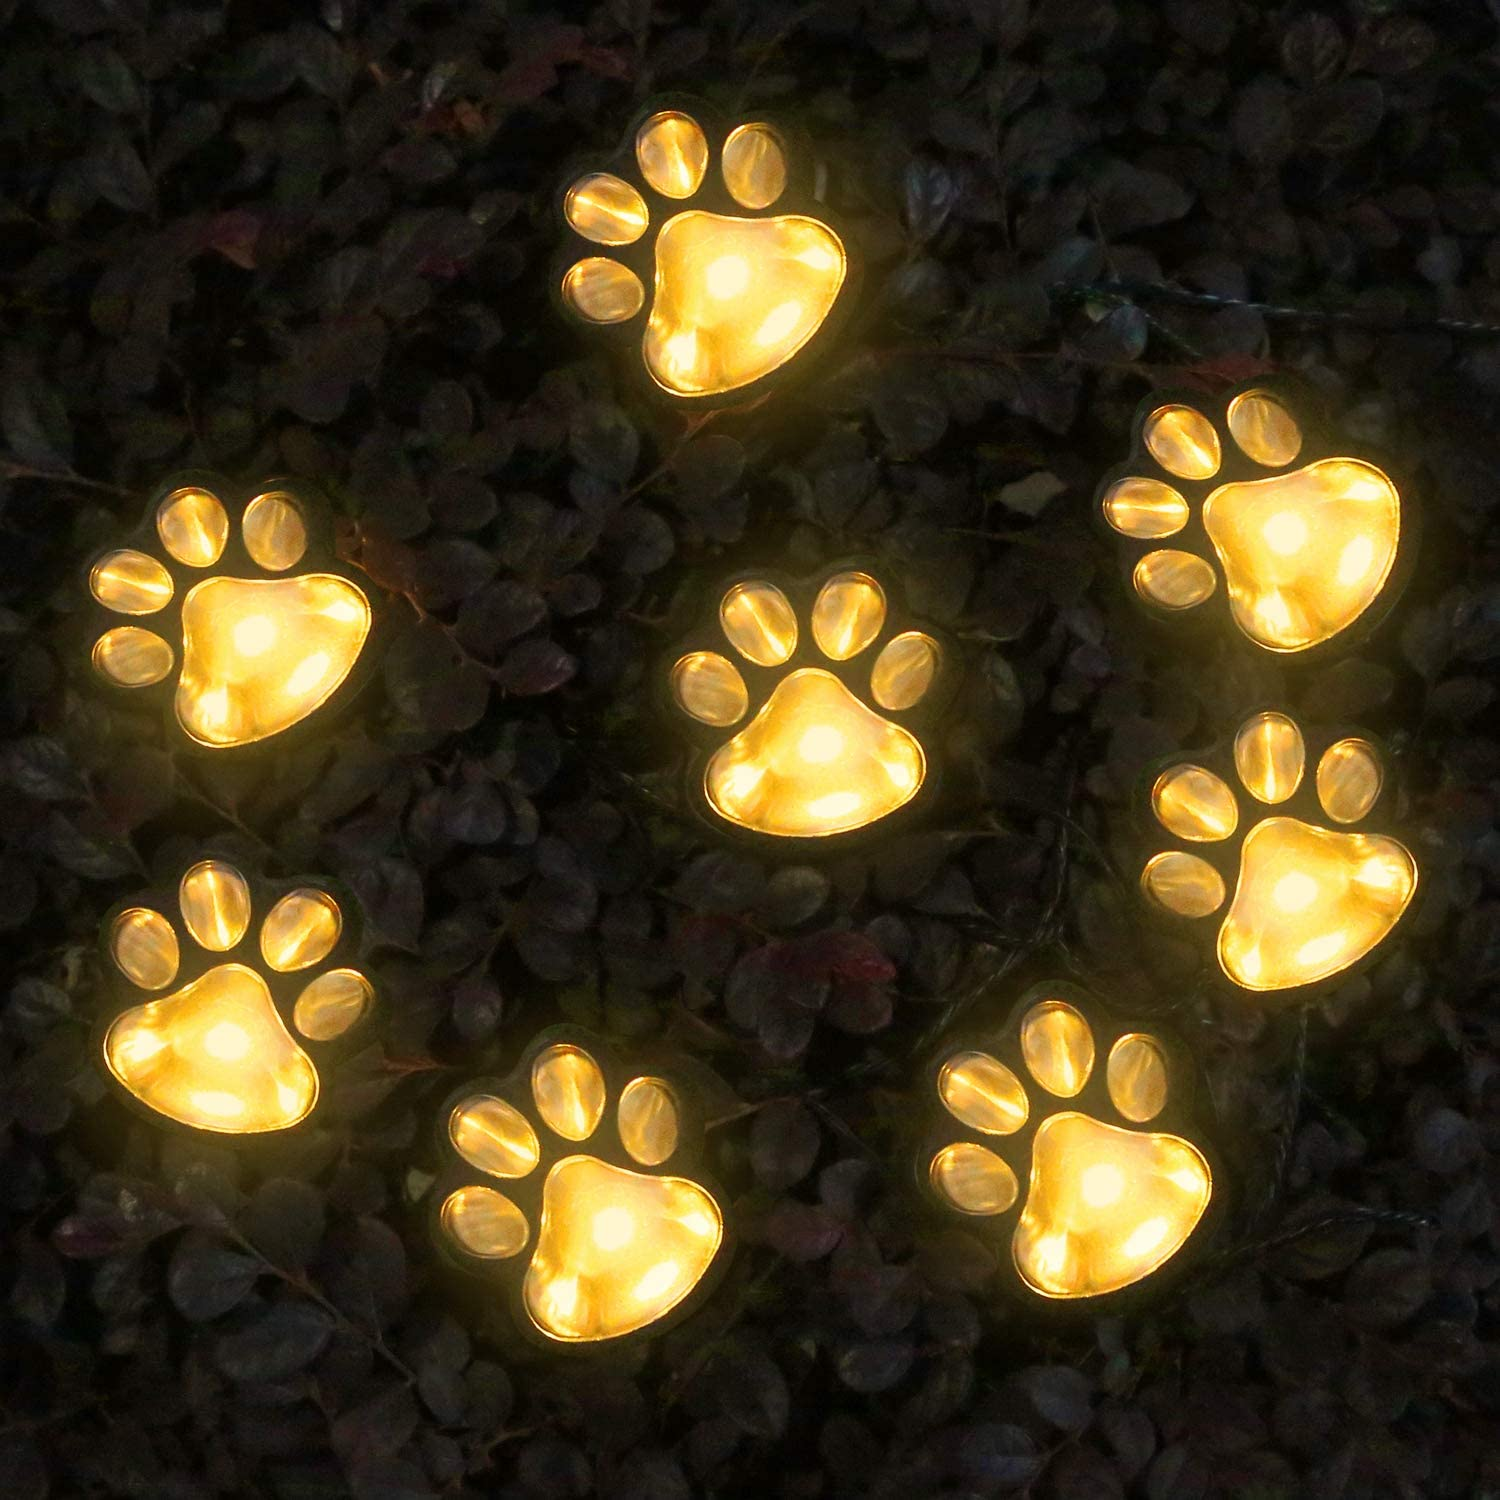 AIDDOMM Solar String Lights Outdoor 8 LEDs, Paw Print Lights, Waterproof, Warm White, 21 Feet, 8 Modes